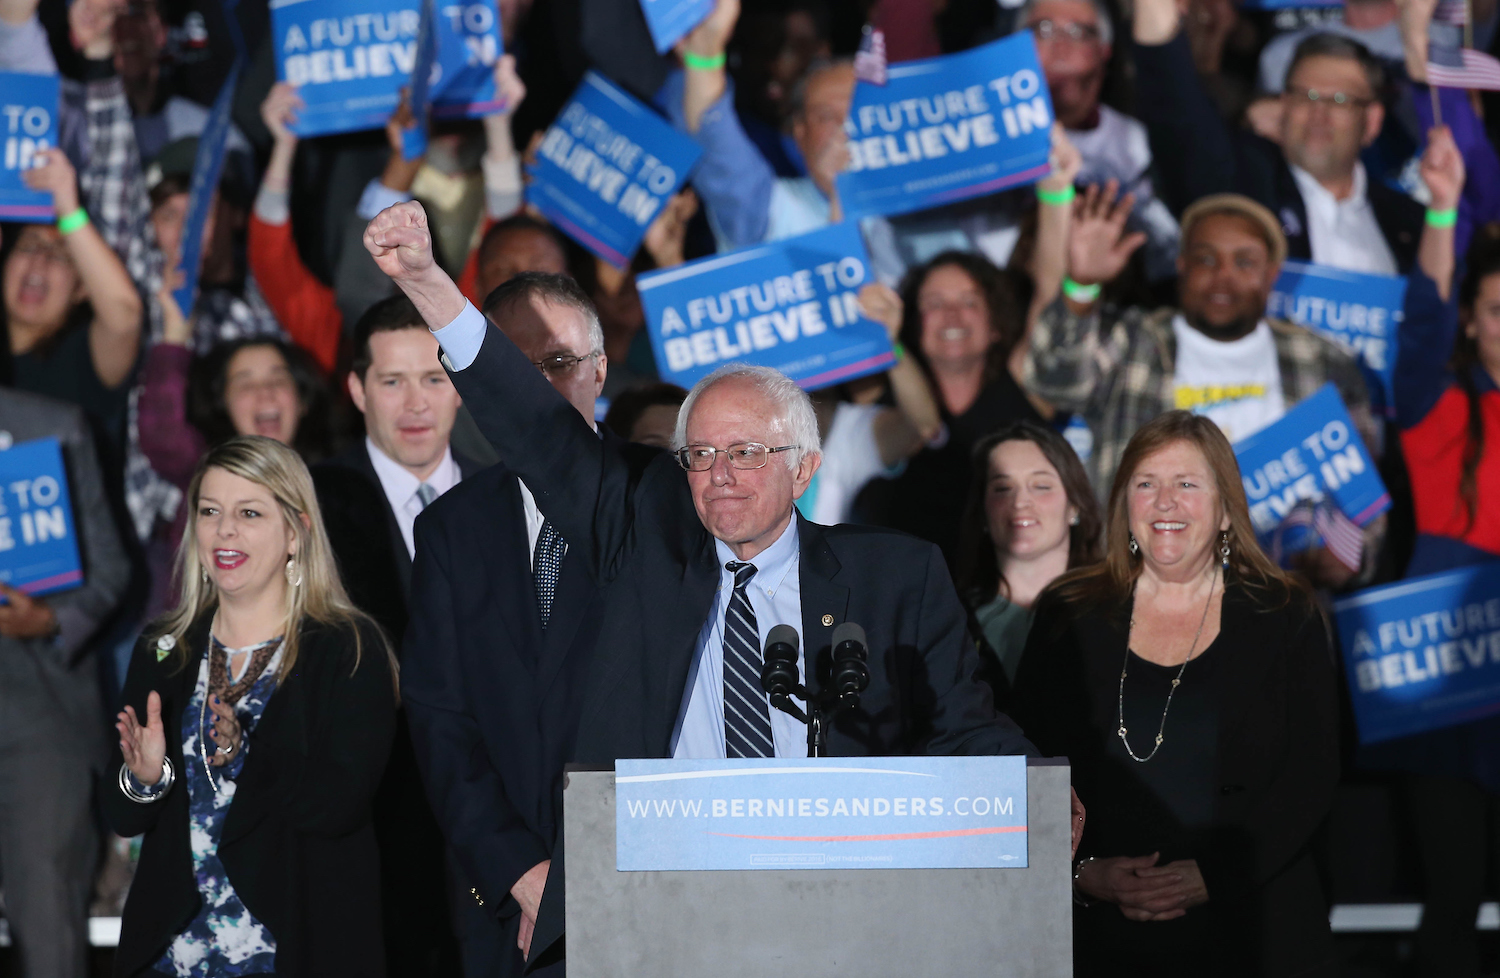 Bernie Sanders speaking at a rally